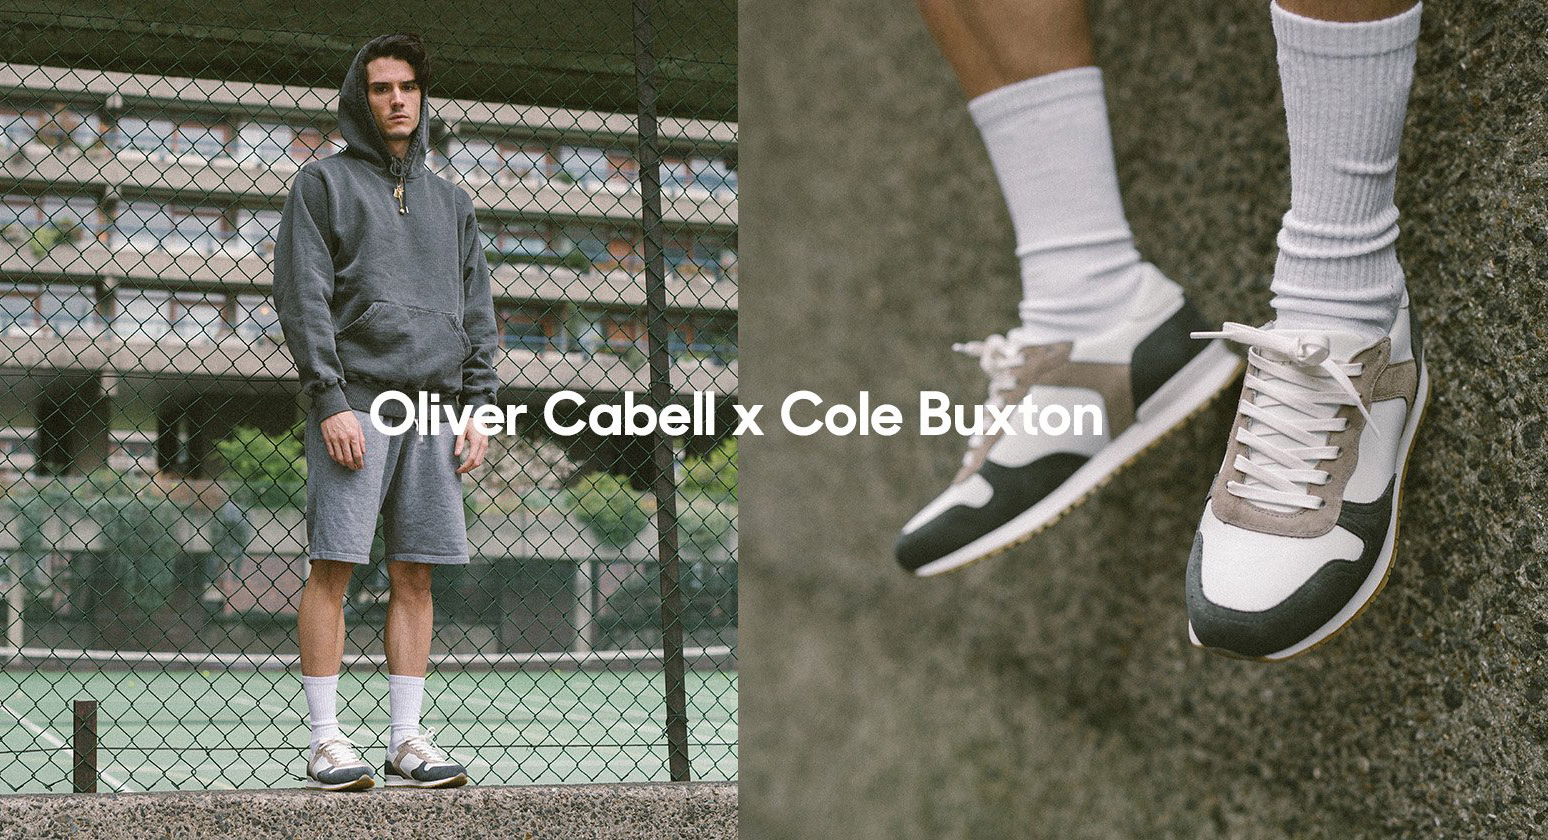 Oliver Cabell x Cole Buxton Team Up For The Limited Edition Rennes Sneaker